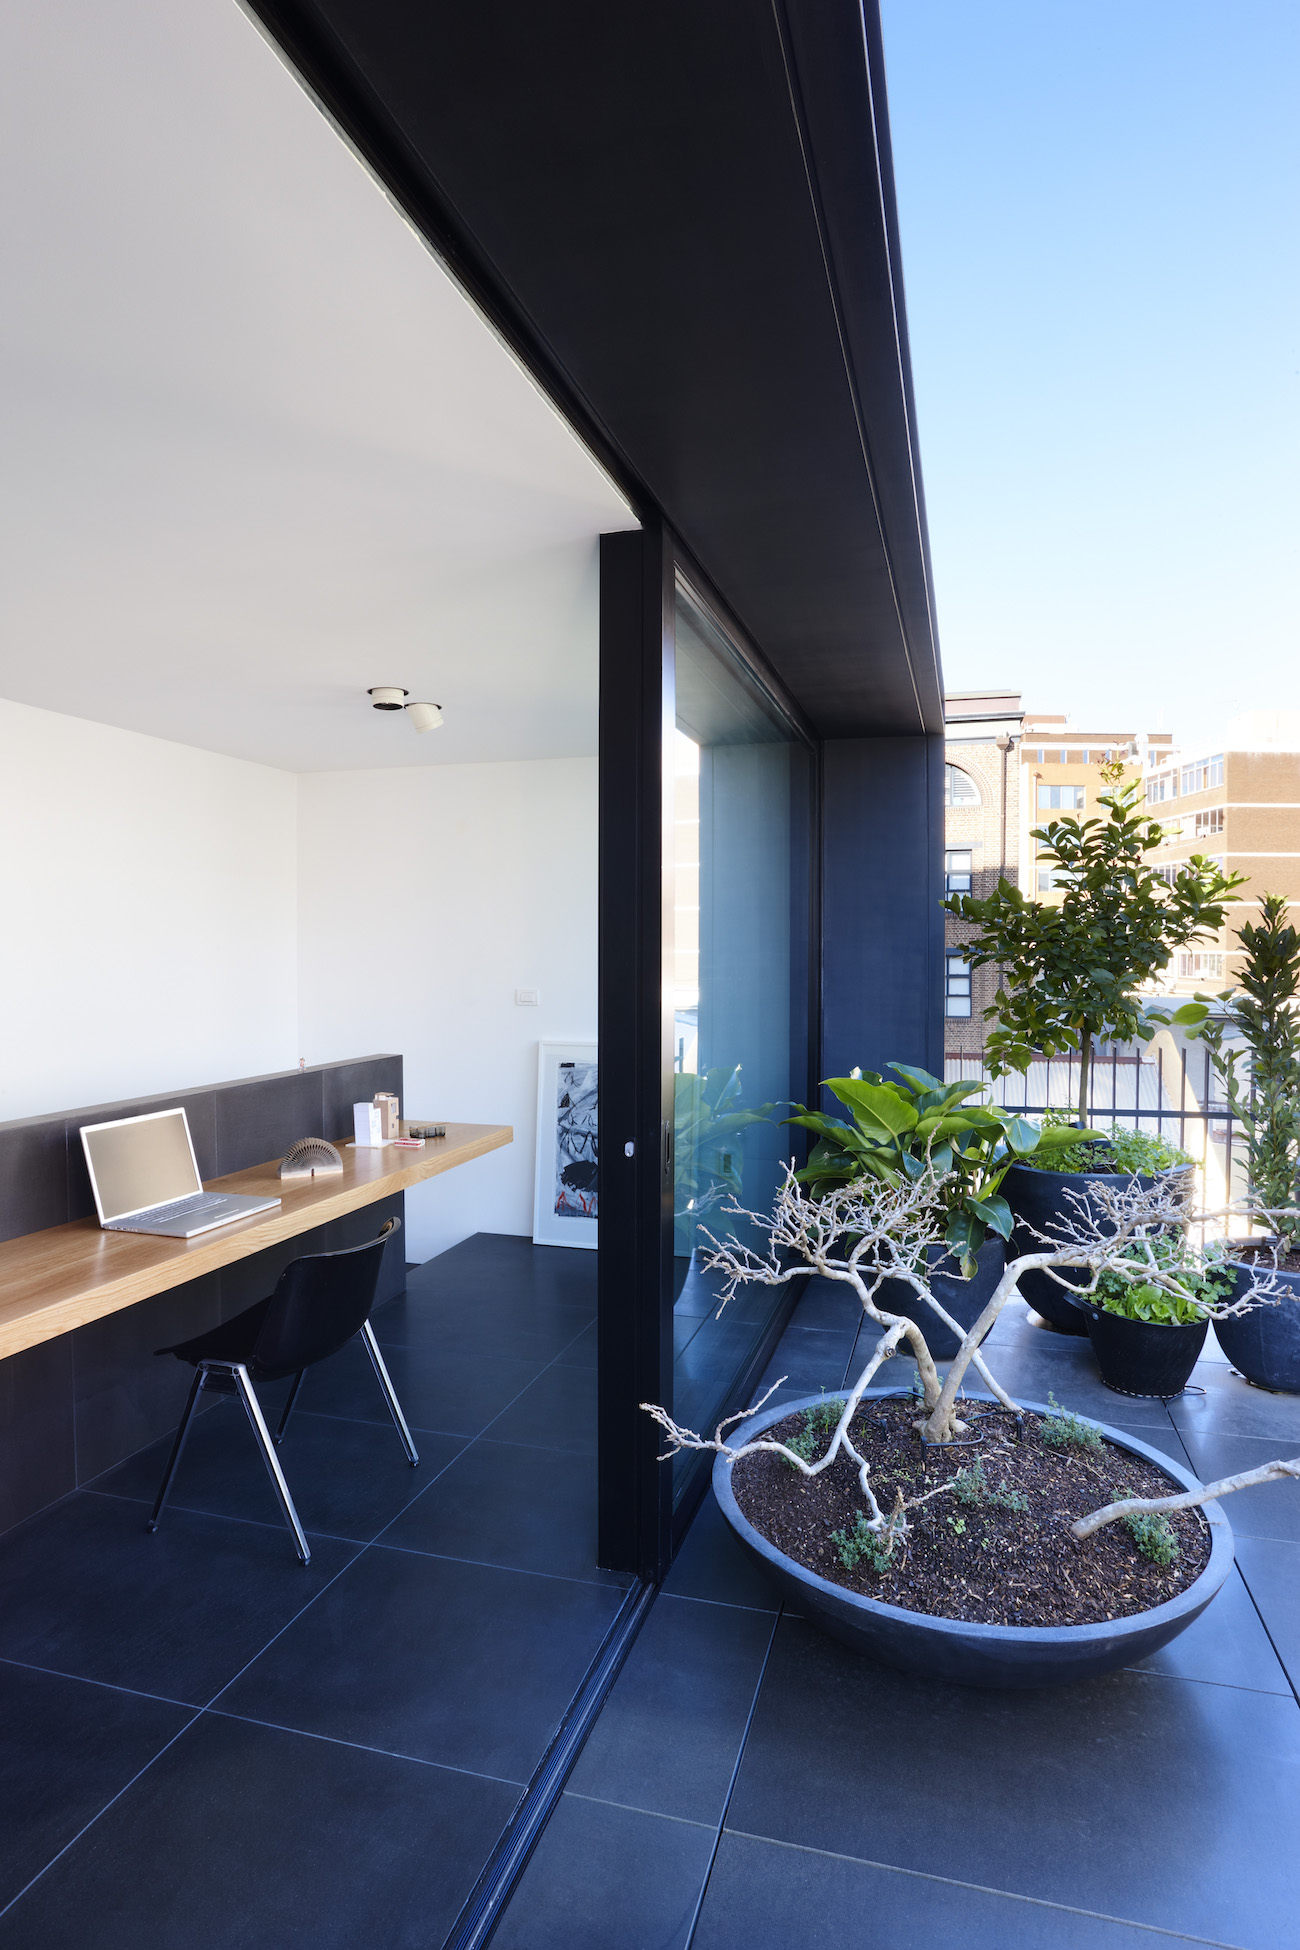 Gallery of surry hills very small house by woods bagot interior design archive the local project - Small spaces surry hills decor ...